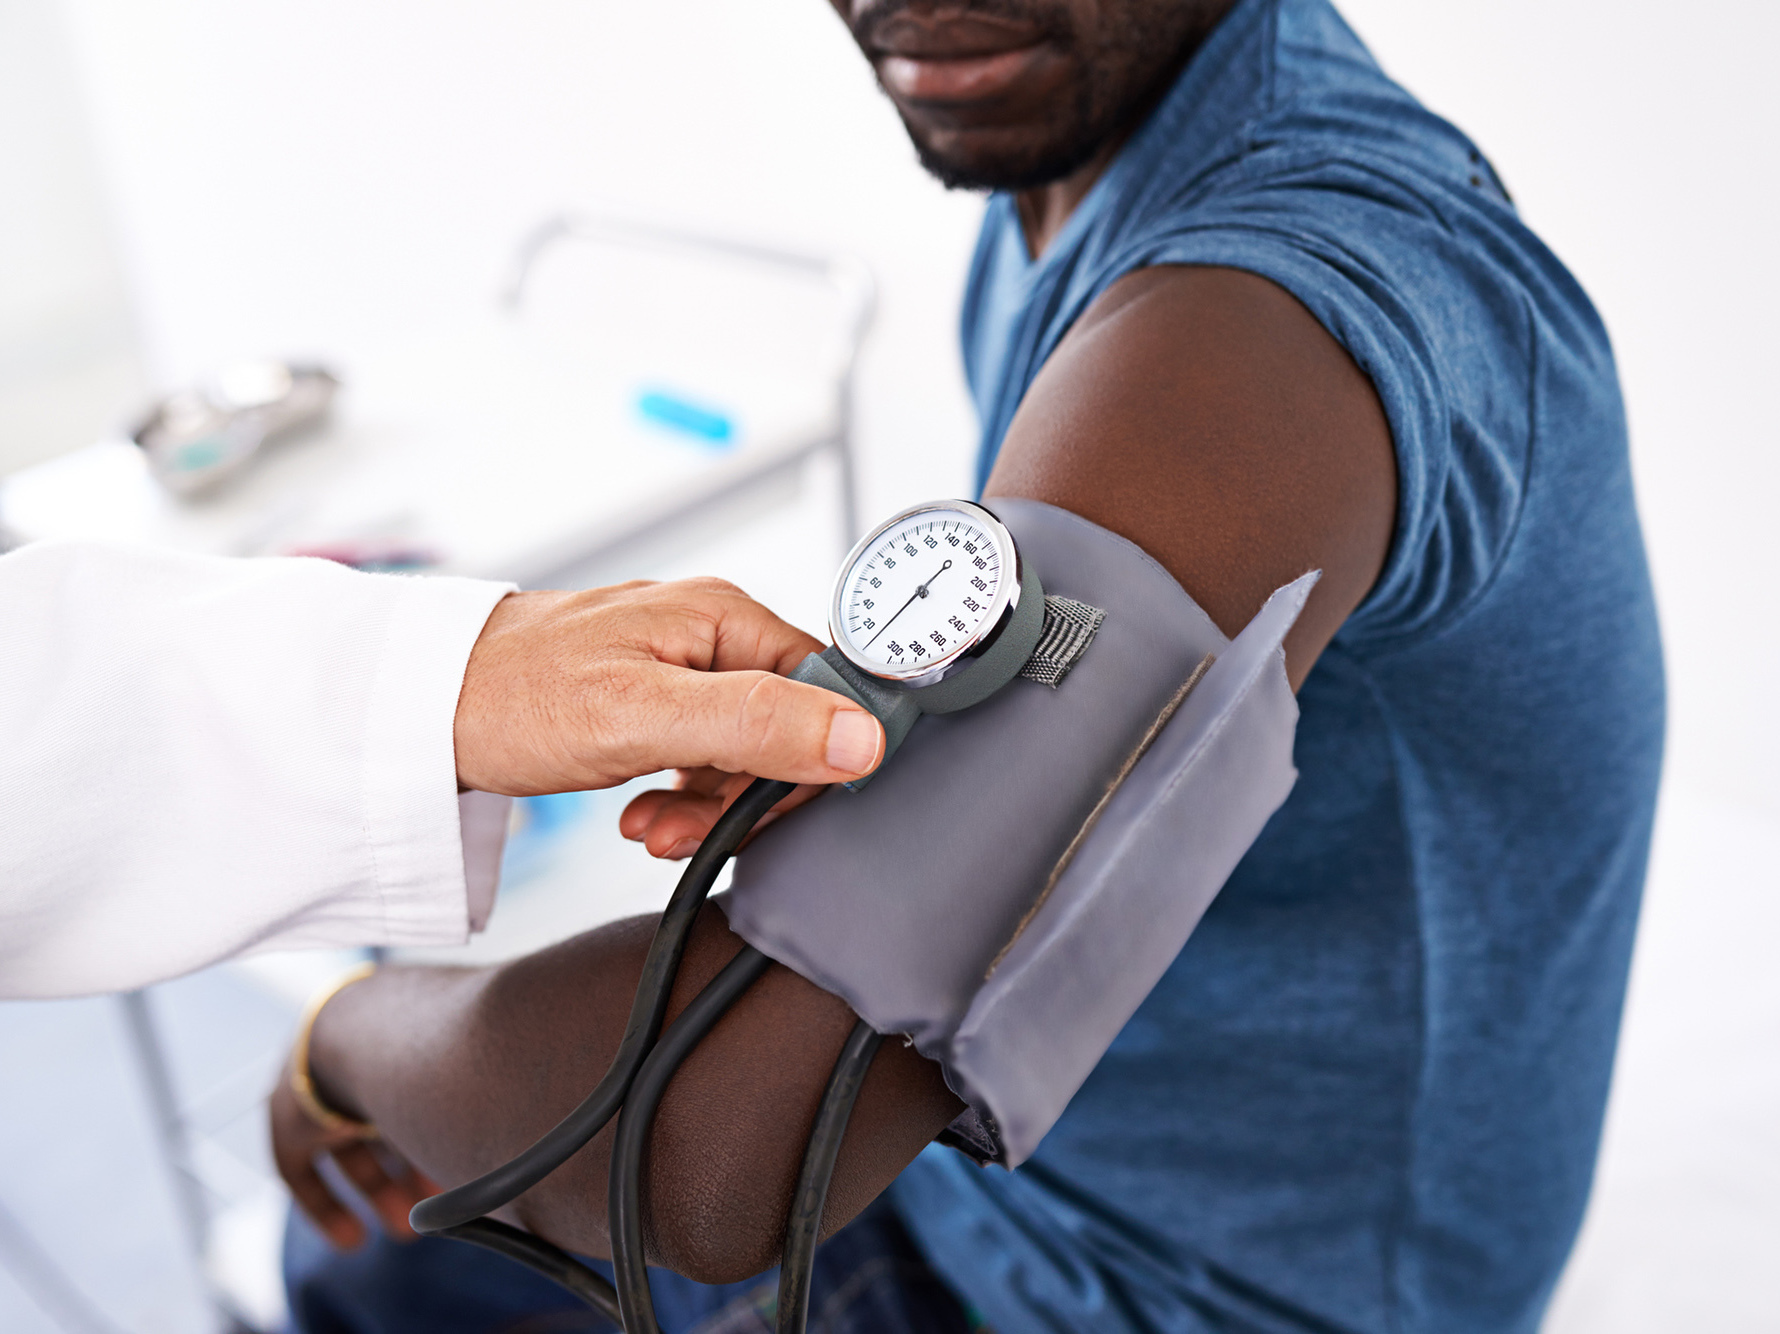 Living in a Segregated Community Influences Blood Pressure